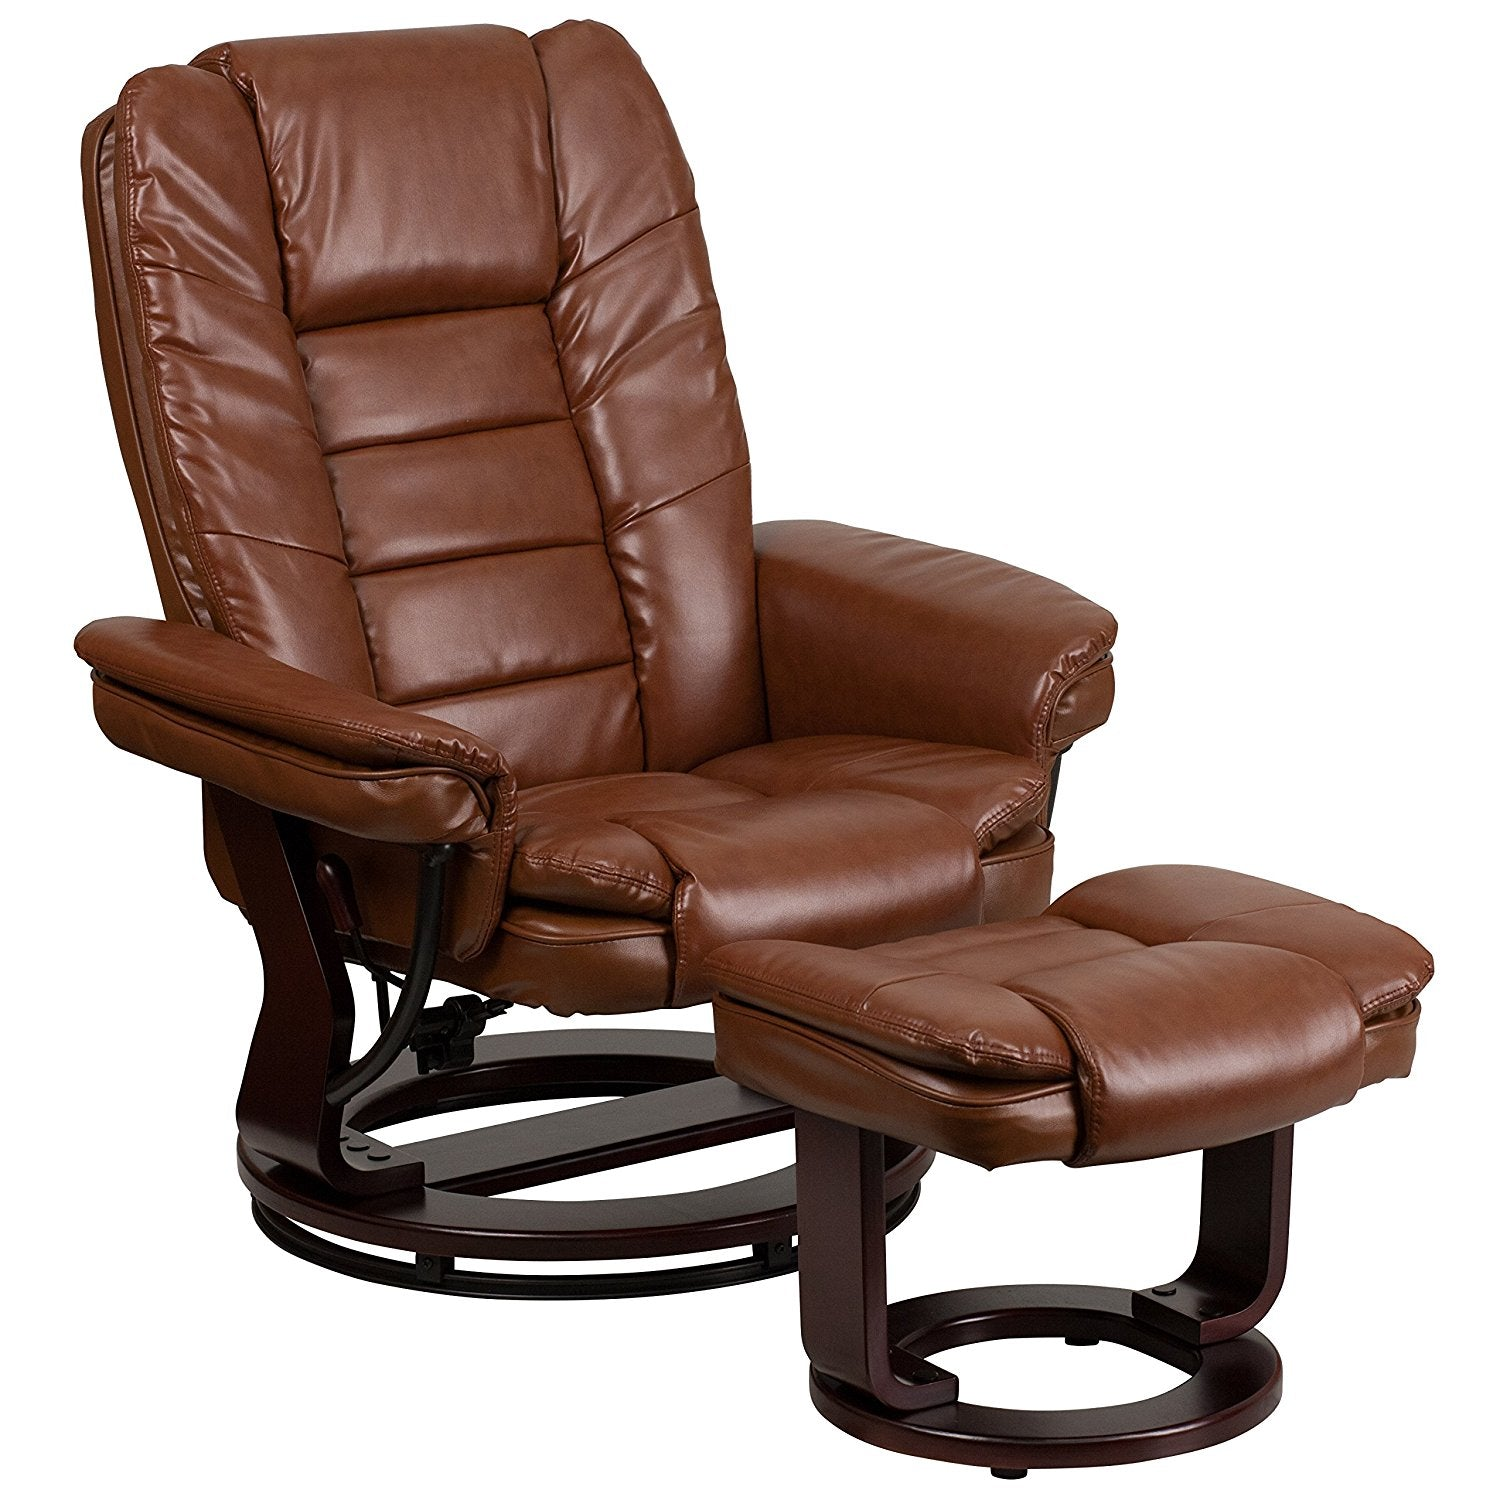 Flash Brown Vintage Leather Recliner Ottoman Swiveling Mahogany Wood Base Contemporary